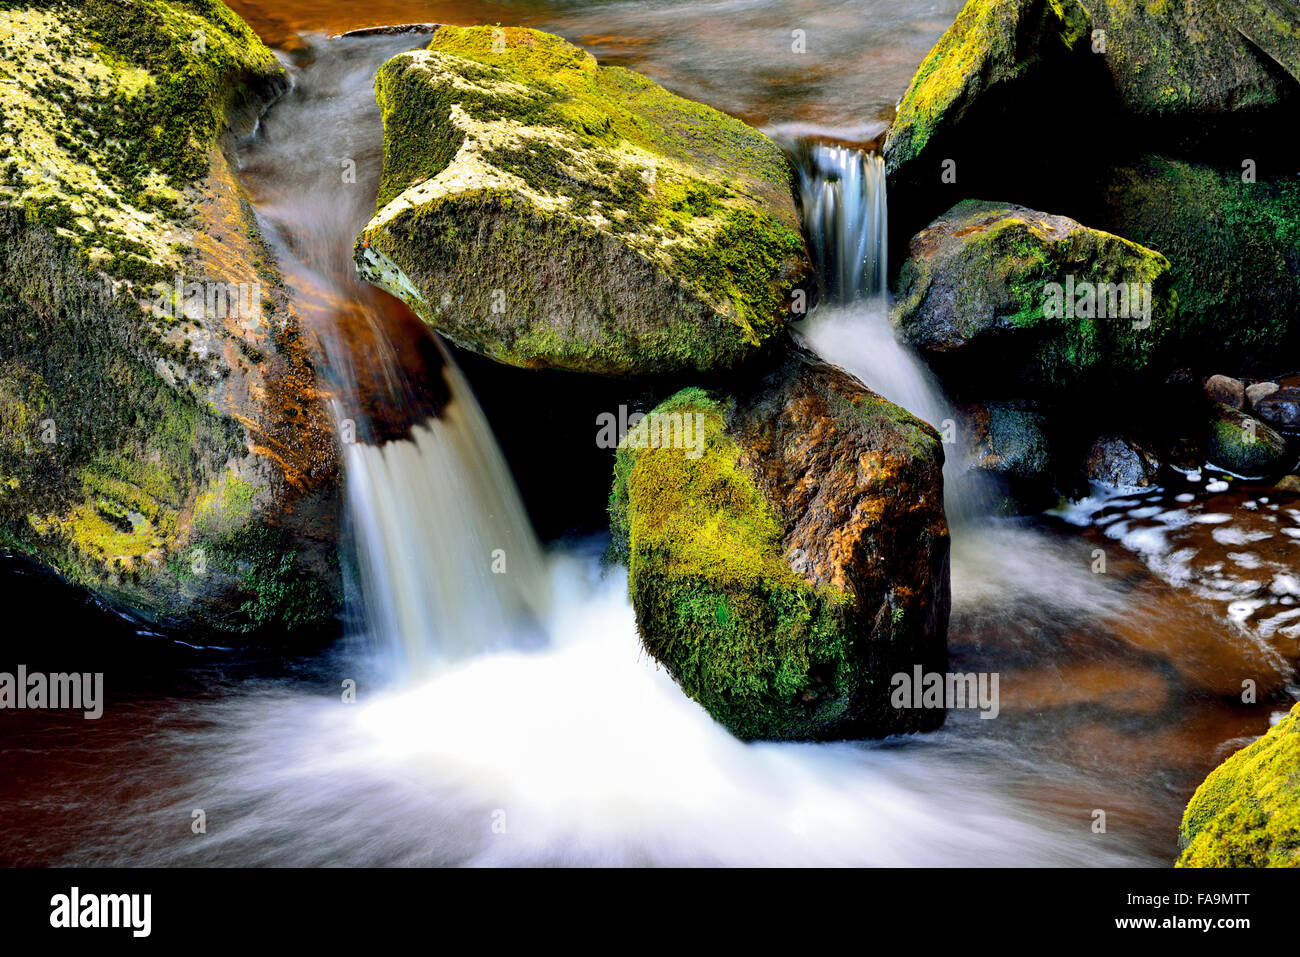 Germany, Bavaria. Small cascade of a mountain creek in National Park Bavarian Forest Stock Photo